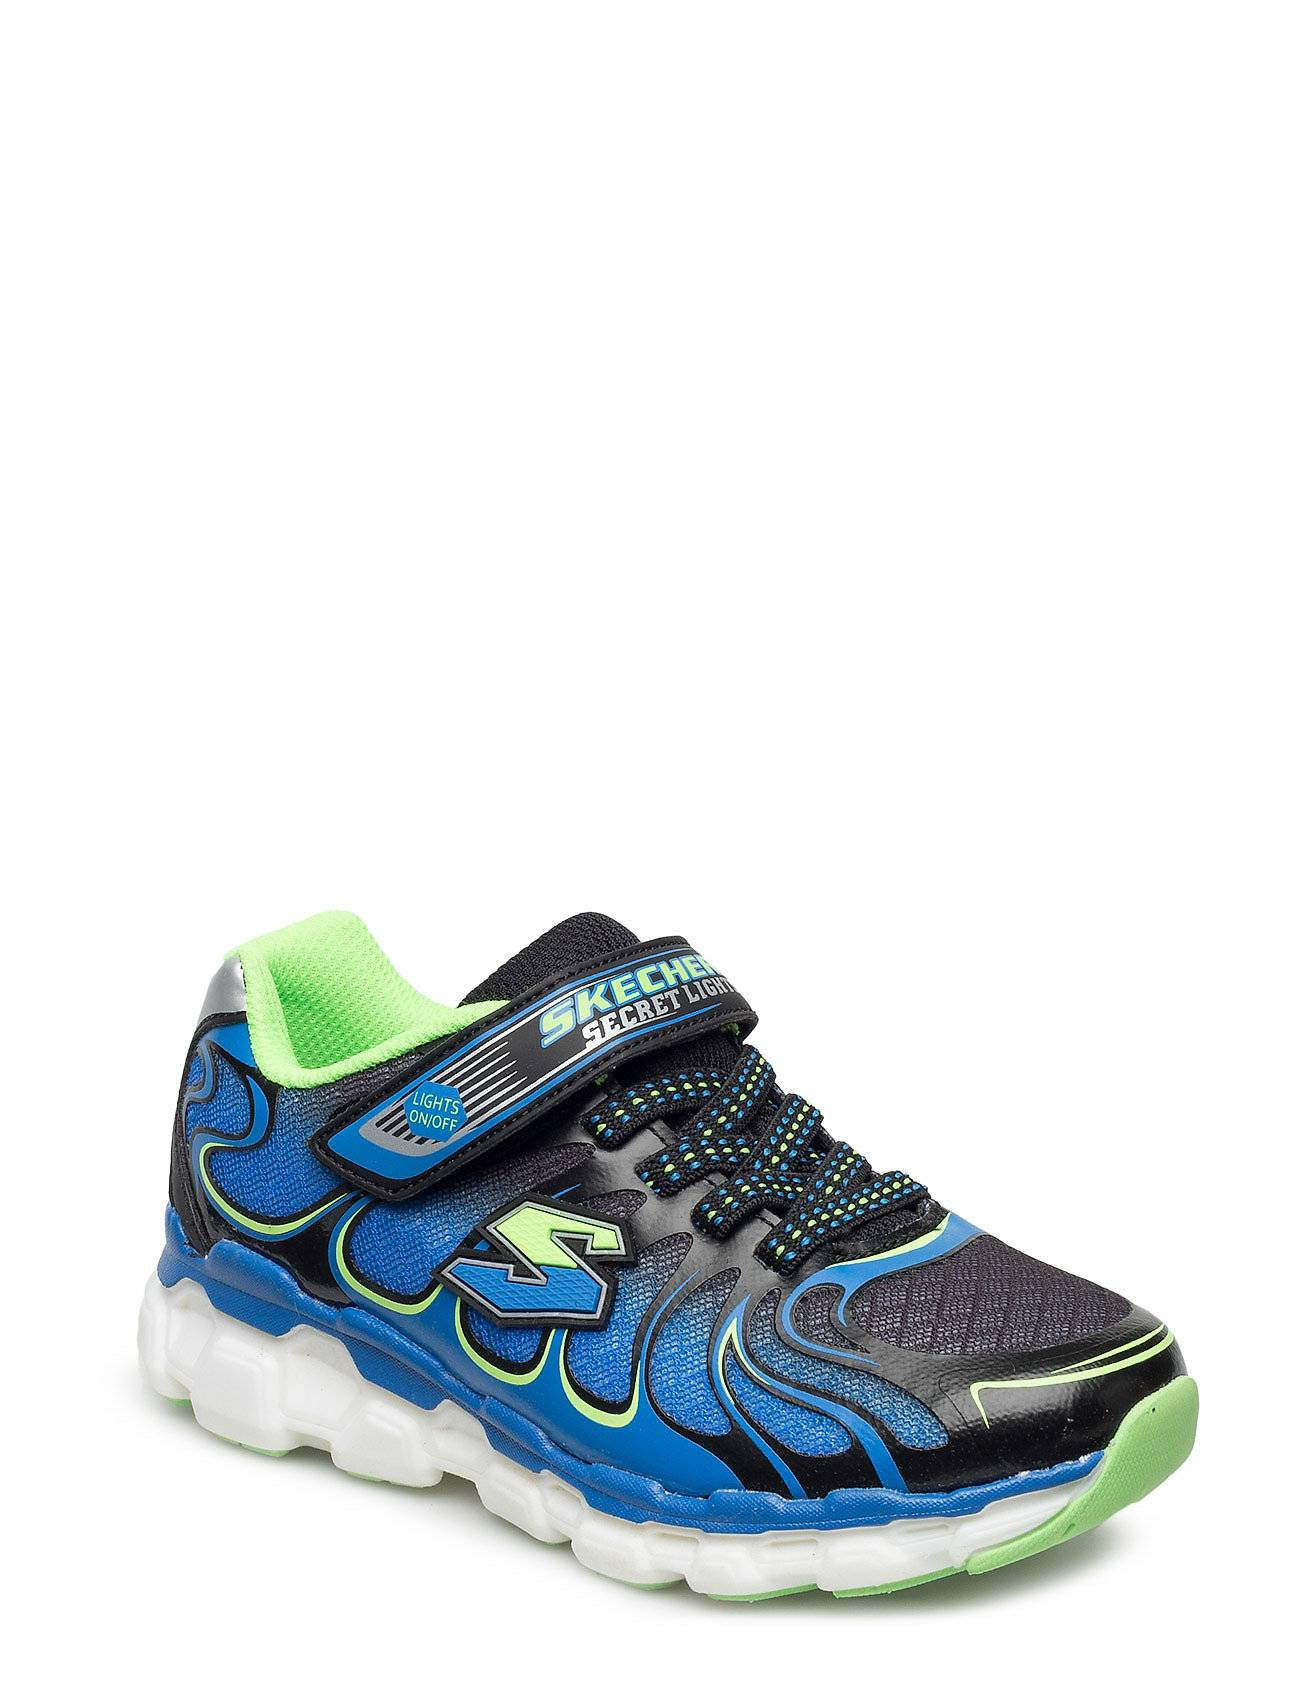 Skechers Boys S Lights - Skech-Rayz